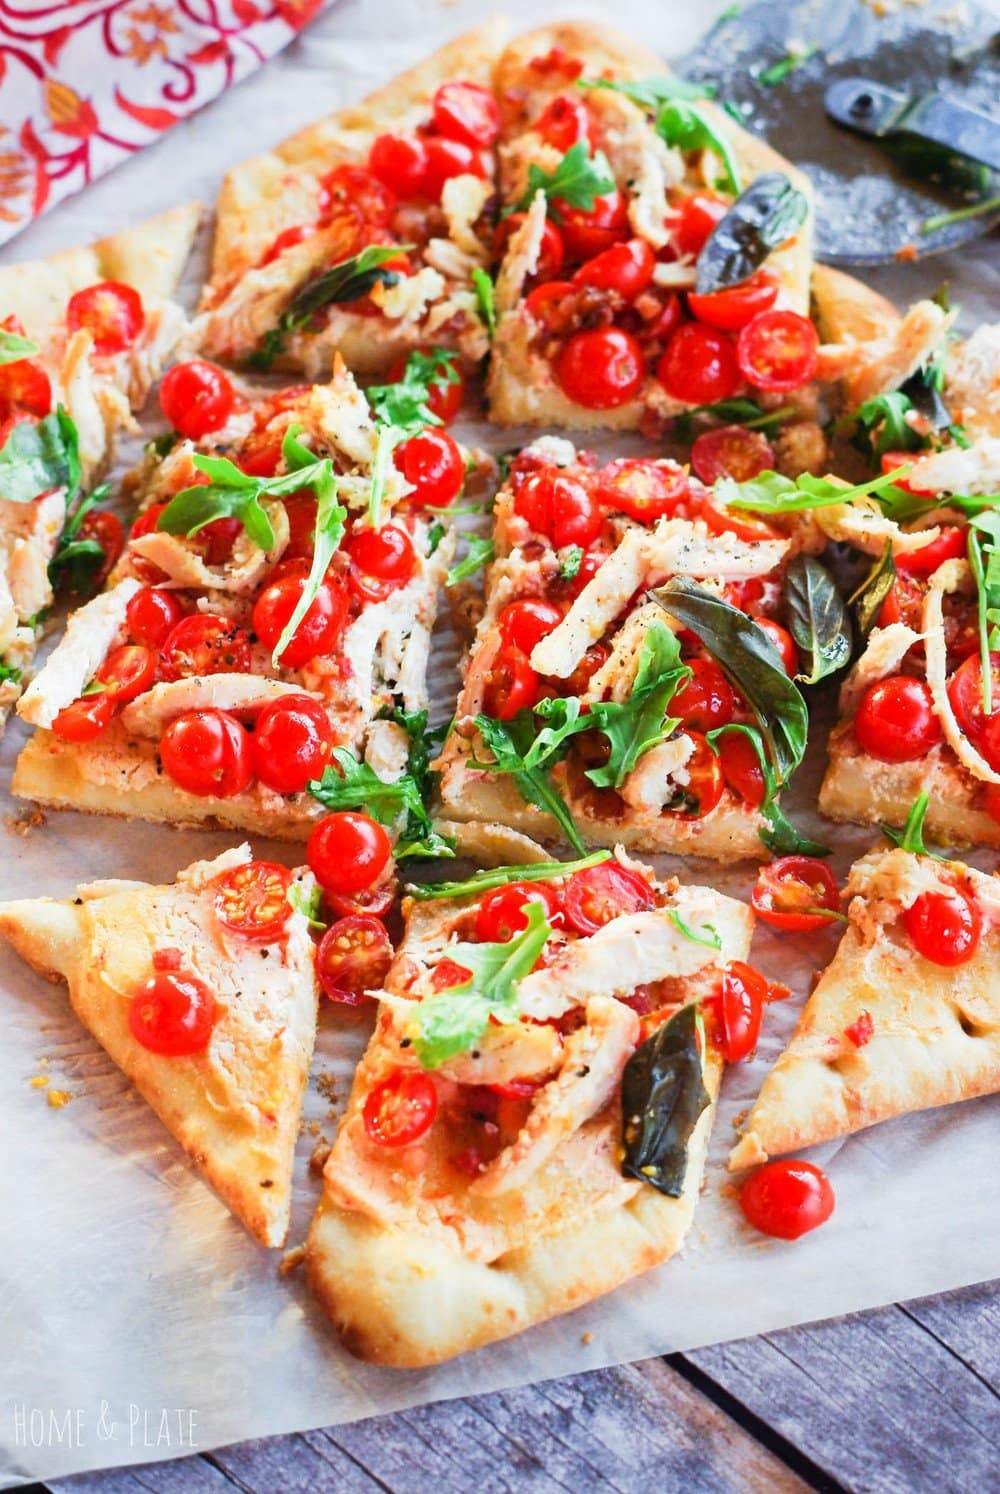 Chicken BLT Flatbread